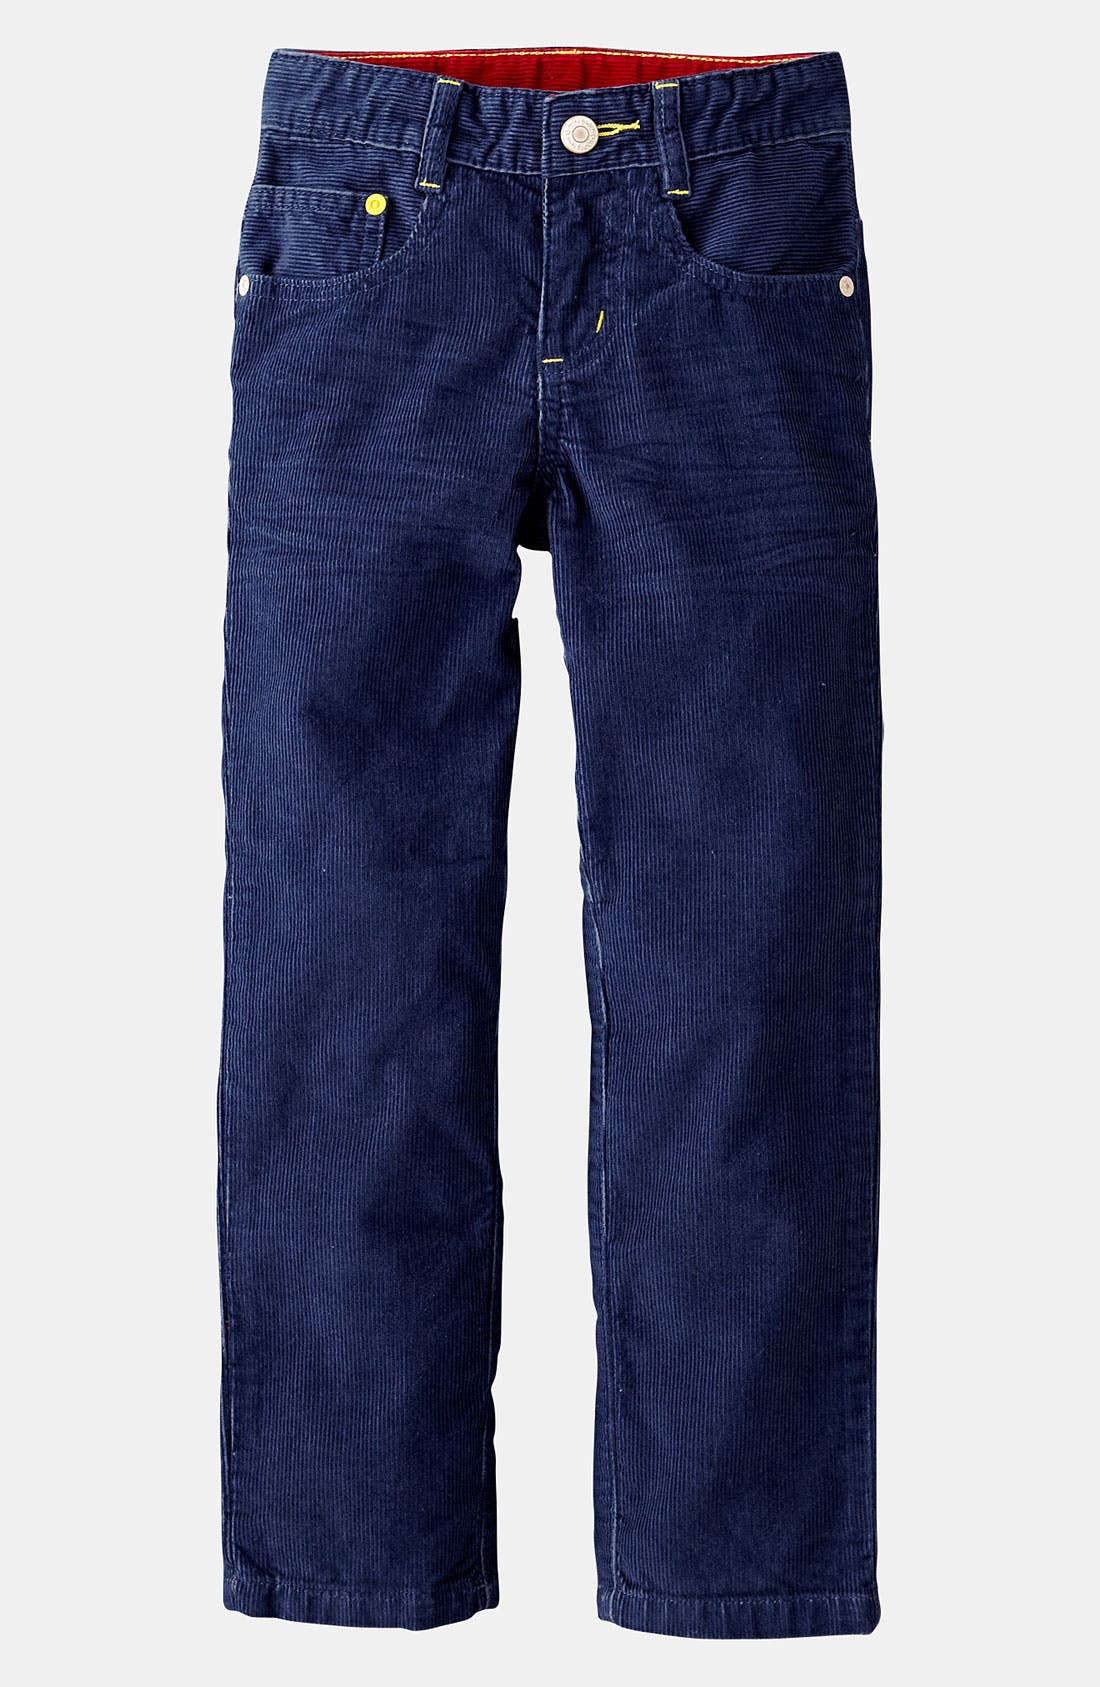 'Preppy' Slim Corduroy Pants,                         Main,                         color, 400